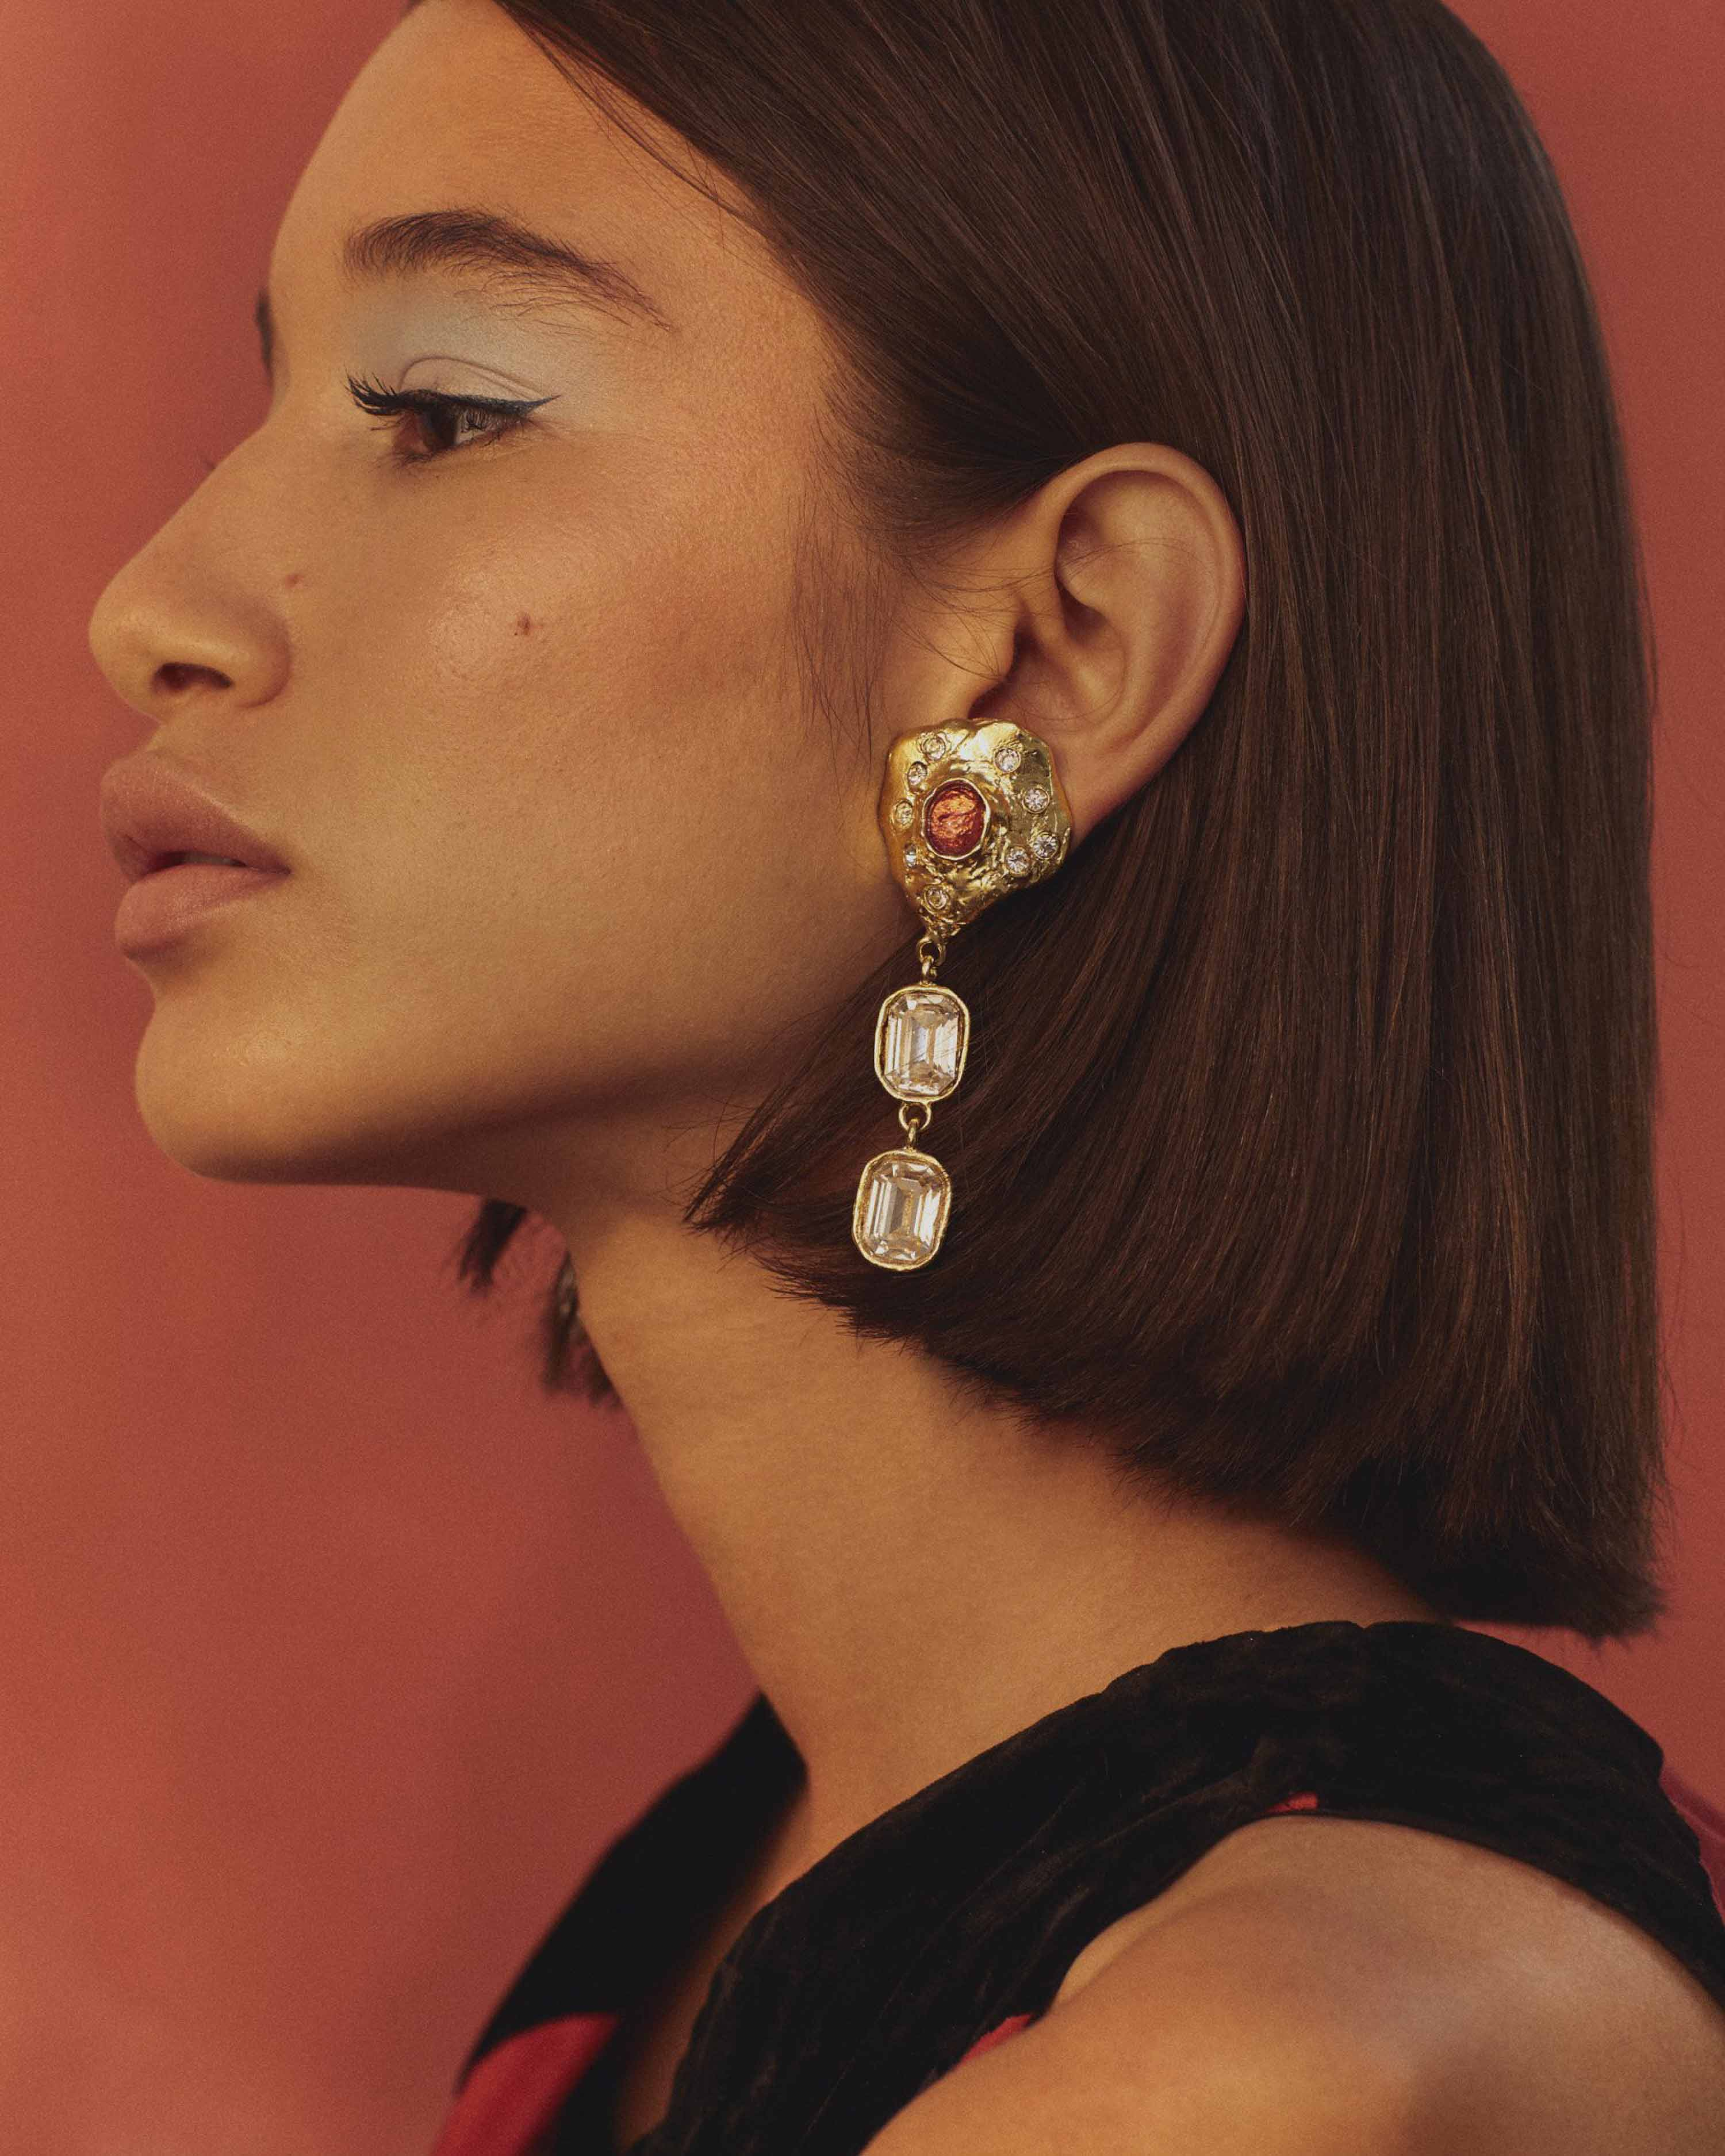 Showcasing 5 new accessory brands exclusive to Camargue